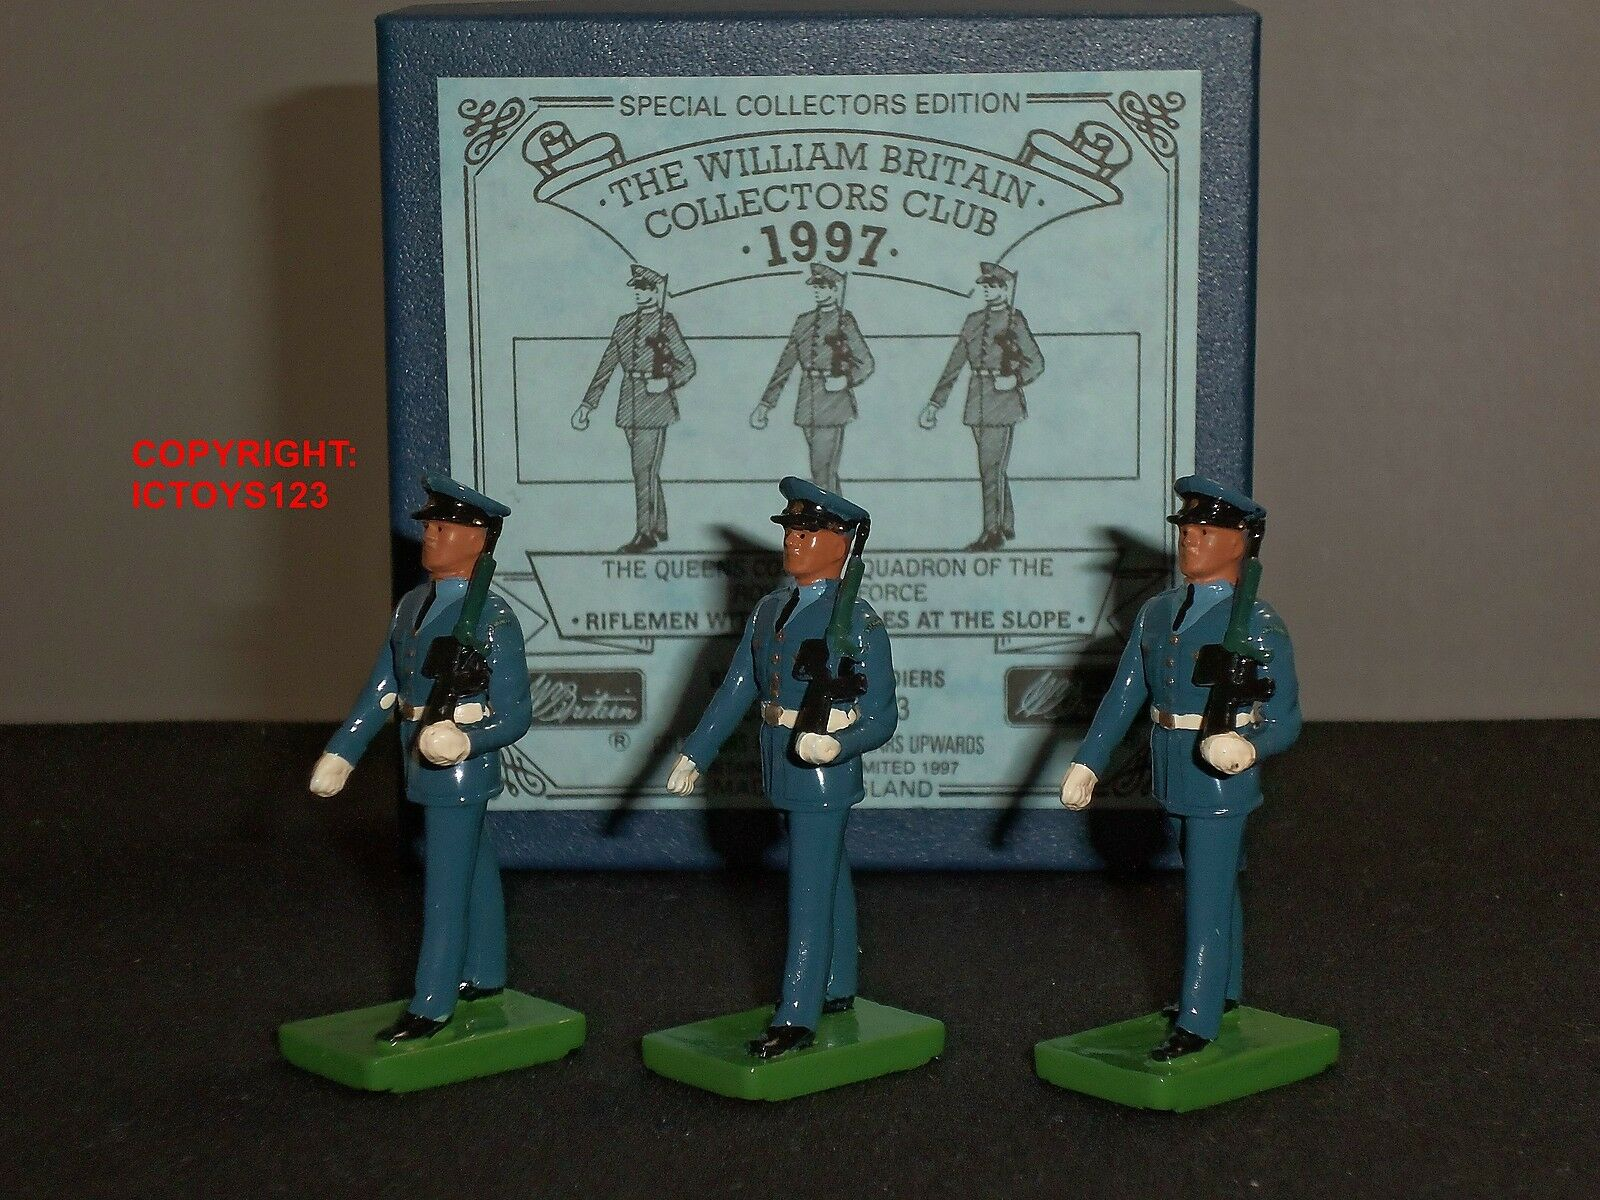 BRITAINS 3073 COLLECTORS CLUB RAF ROYAL AIR FORCE RIFLEMEN WITH SA80 RIFLES SET